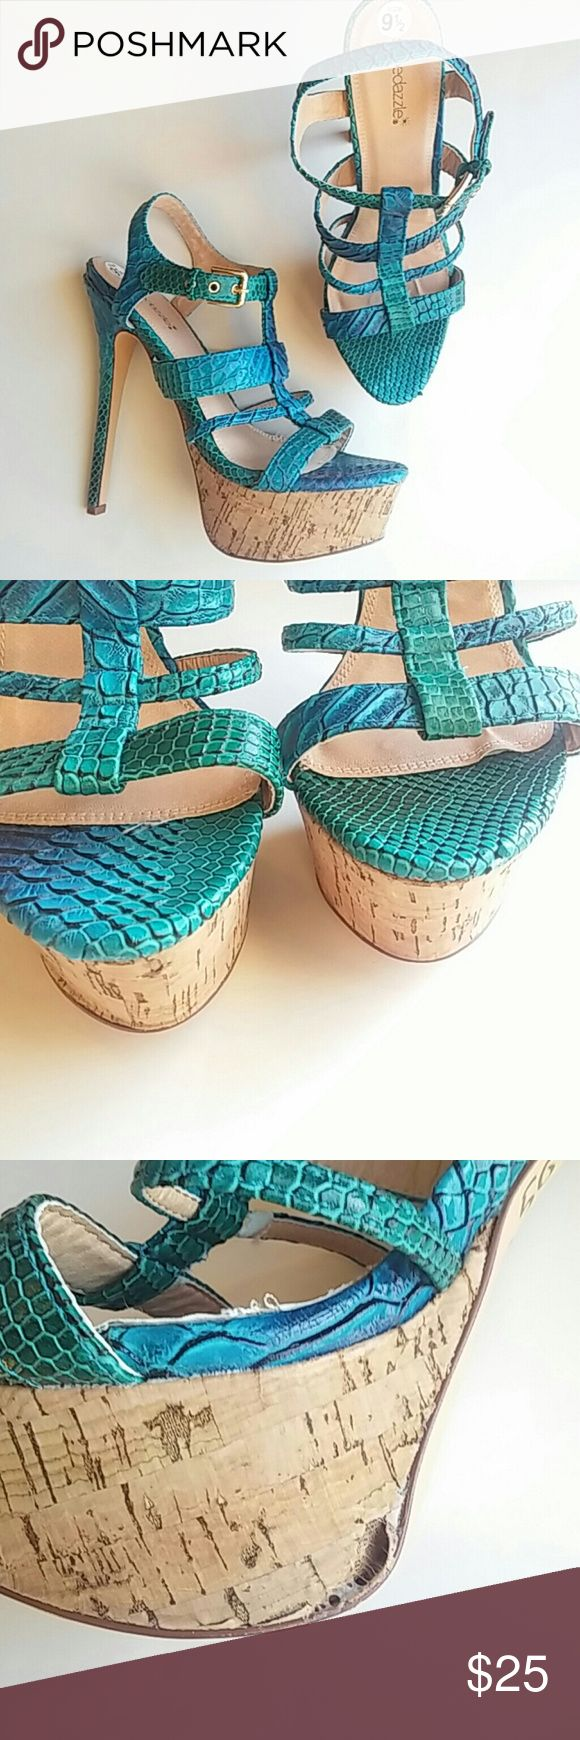 "🌟New Listing🌟Shoe Dazzle mermaid heels(sz 9 1/2) Shoe Dazzle mermaid heels! Like new with one flaw on the cork covering (see pic) heel is 5"" Shoe Dazzle Shoes Heels"